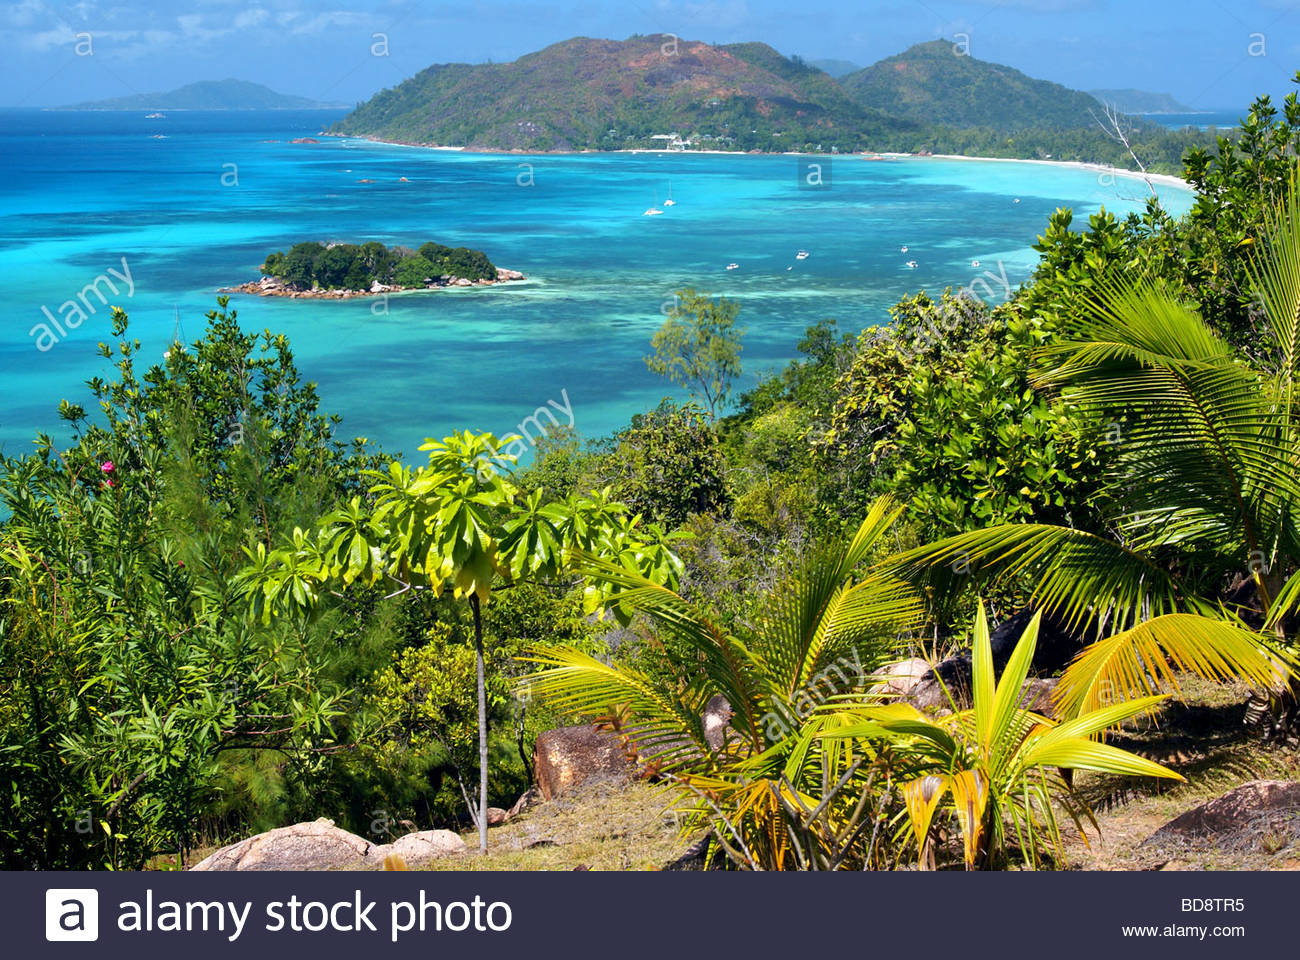 View over Anse Volbert and Chauve-Souris Island - Praslin - Seychelles Stock Photo